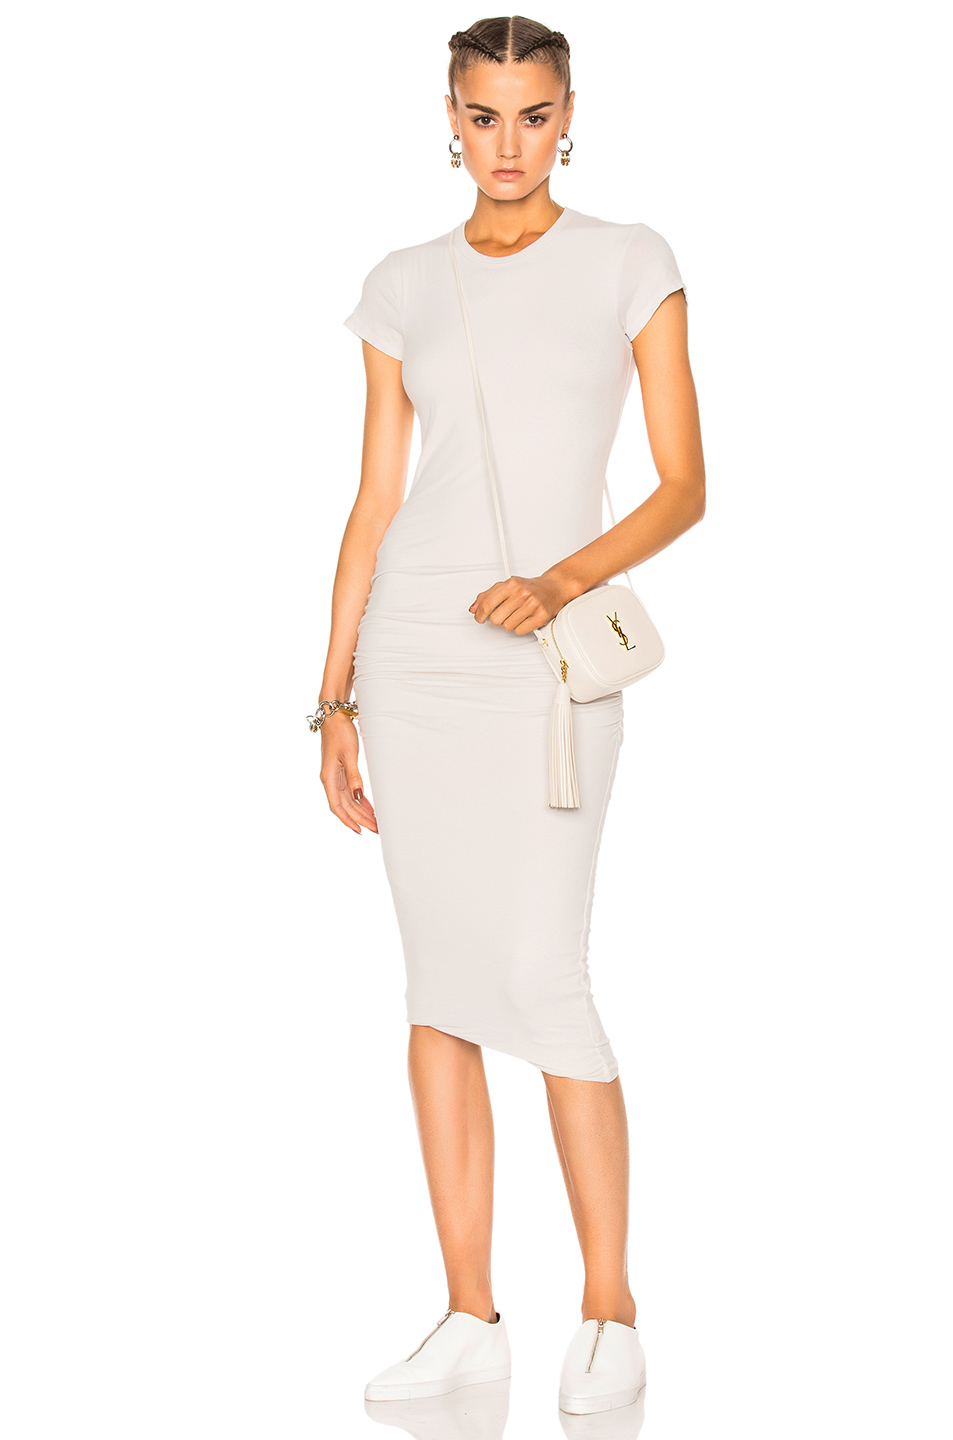 JAMES PERSE Classic Skinny Dress in Talc